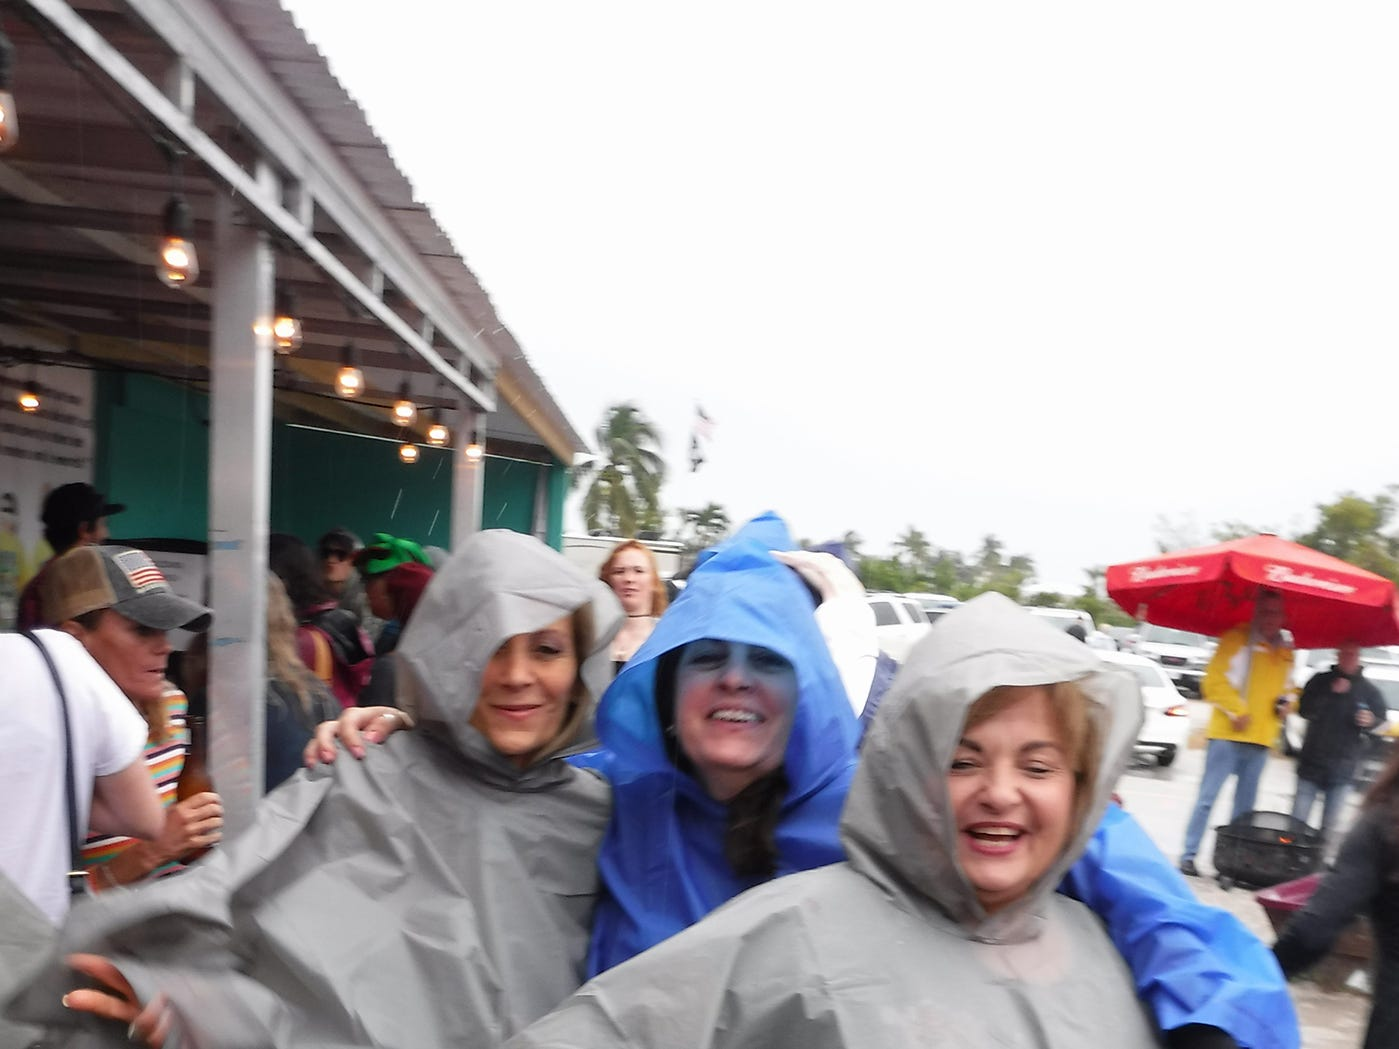 Ponchos were a fashion statement. Stan's Idle Hour restaurant held The 35th annual Mullet Festival over the weekend, a rain and beer-soaked celebration.